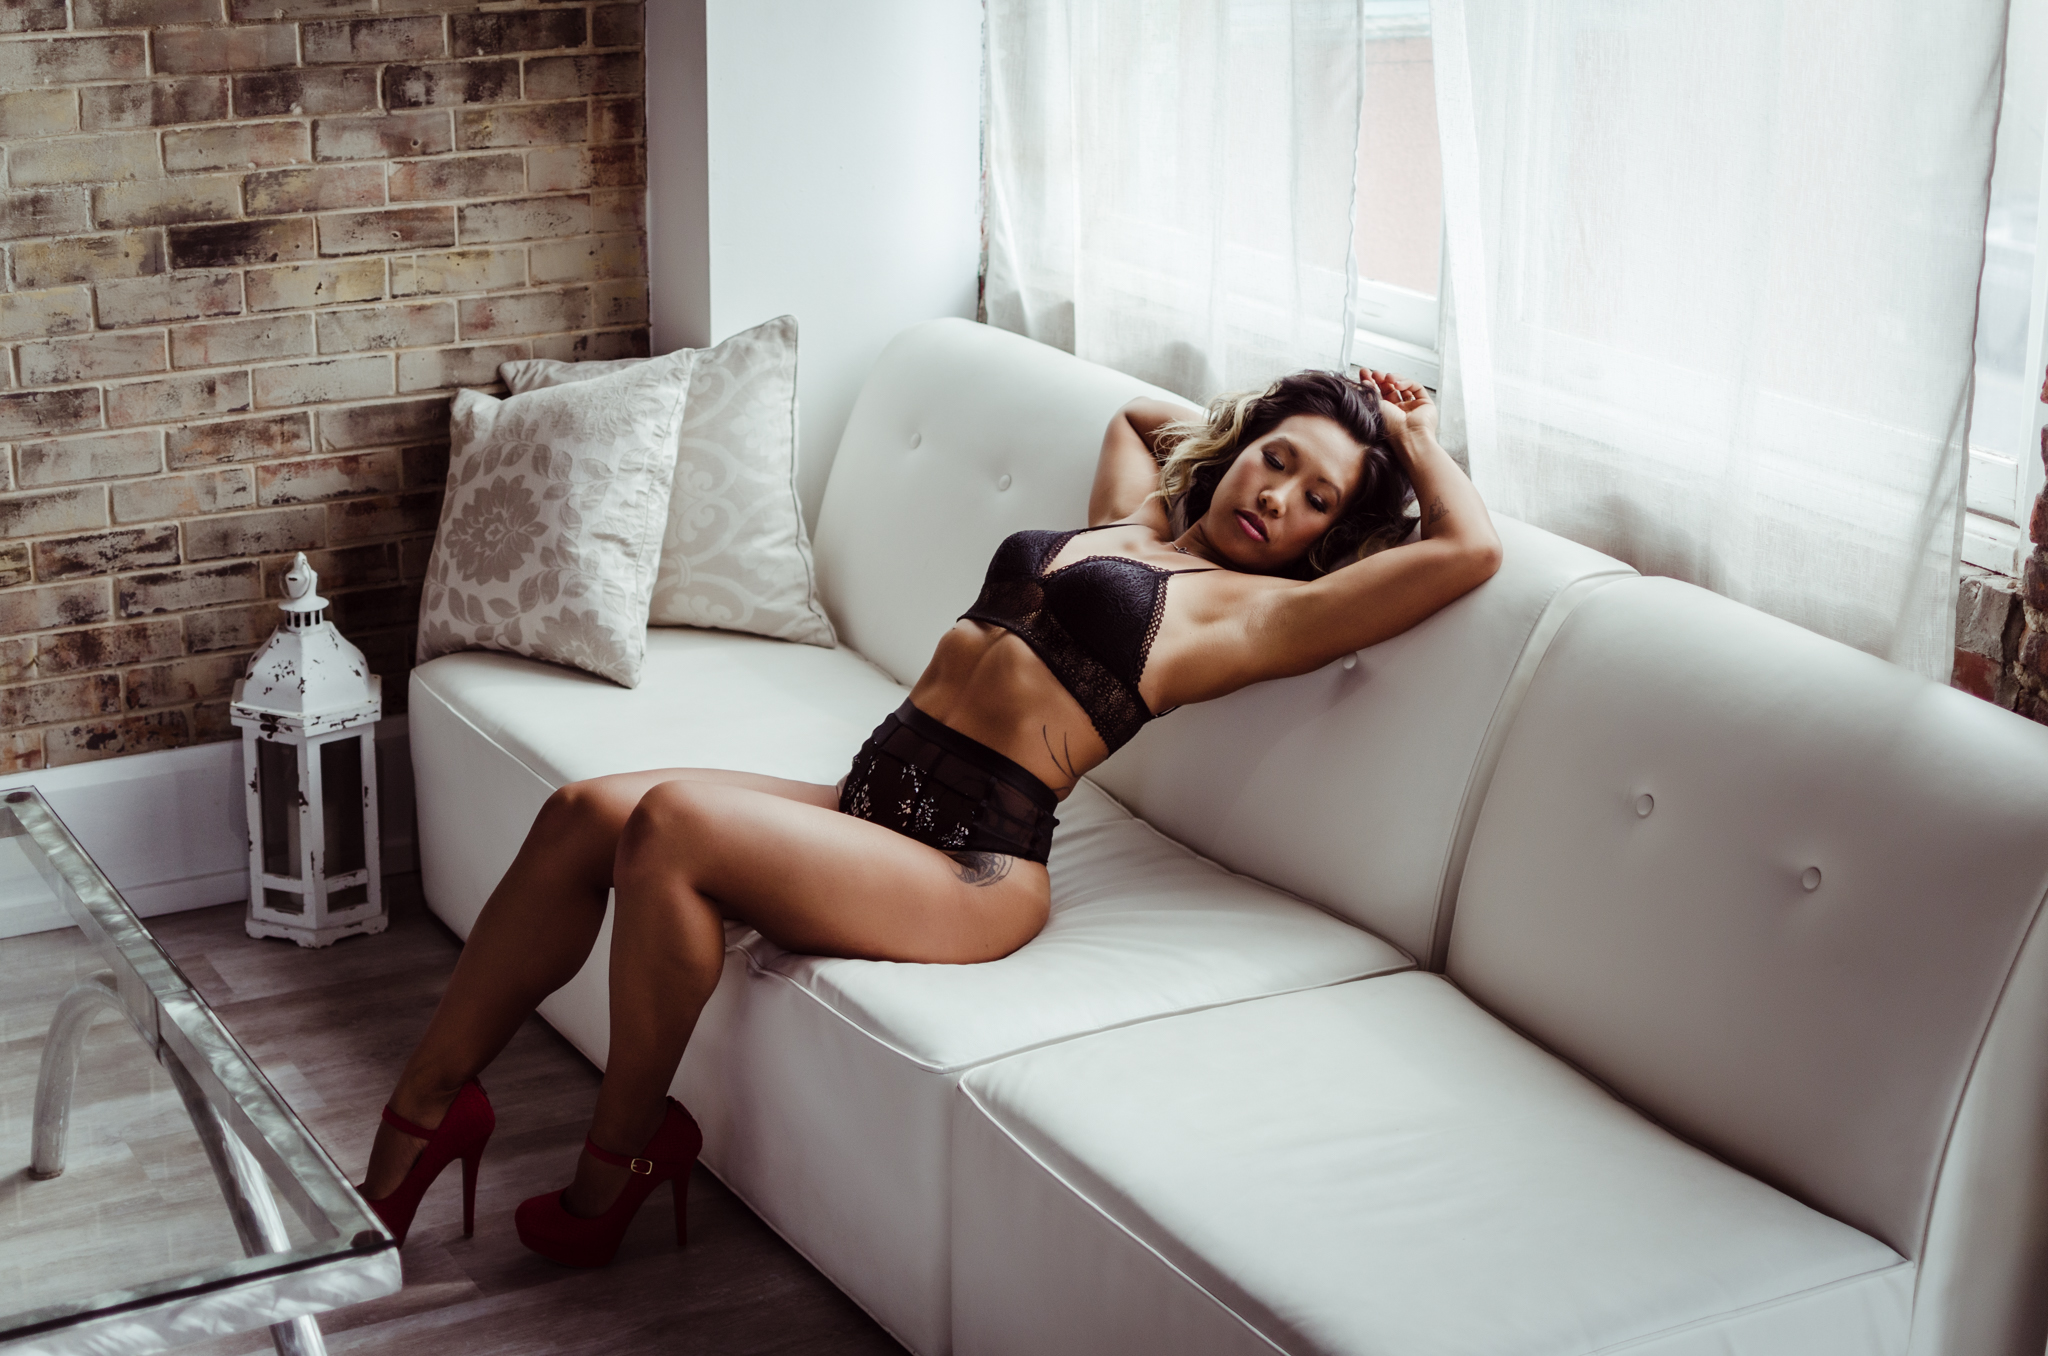 best NC boudoir photography experience in belle vue wilmington venue with black lace lingerie by Victoria Secret by Amandamarie Gillen Photography Wilmington NC photographer couch pose showing abs by window with natural light